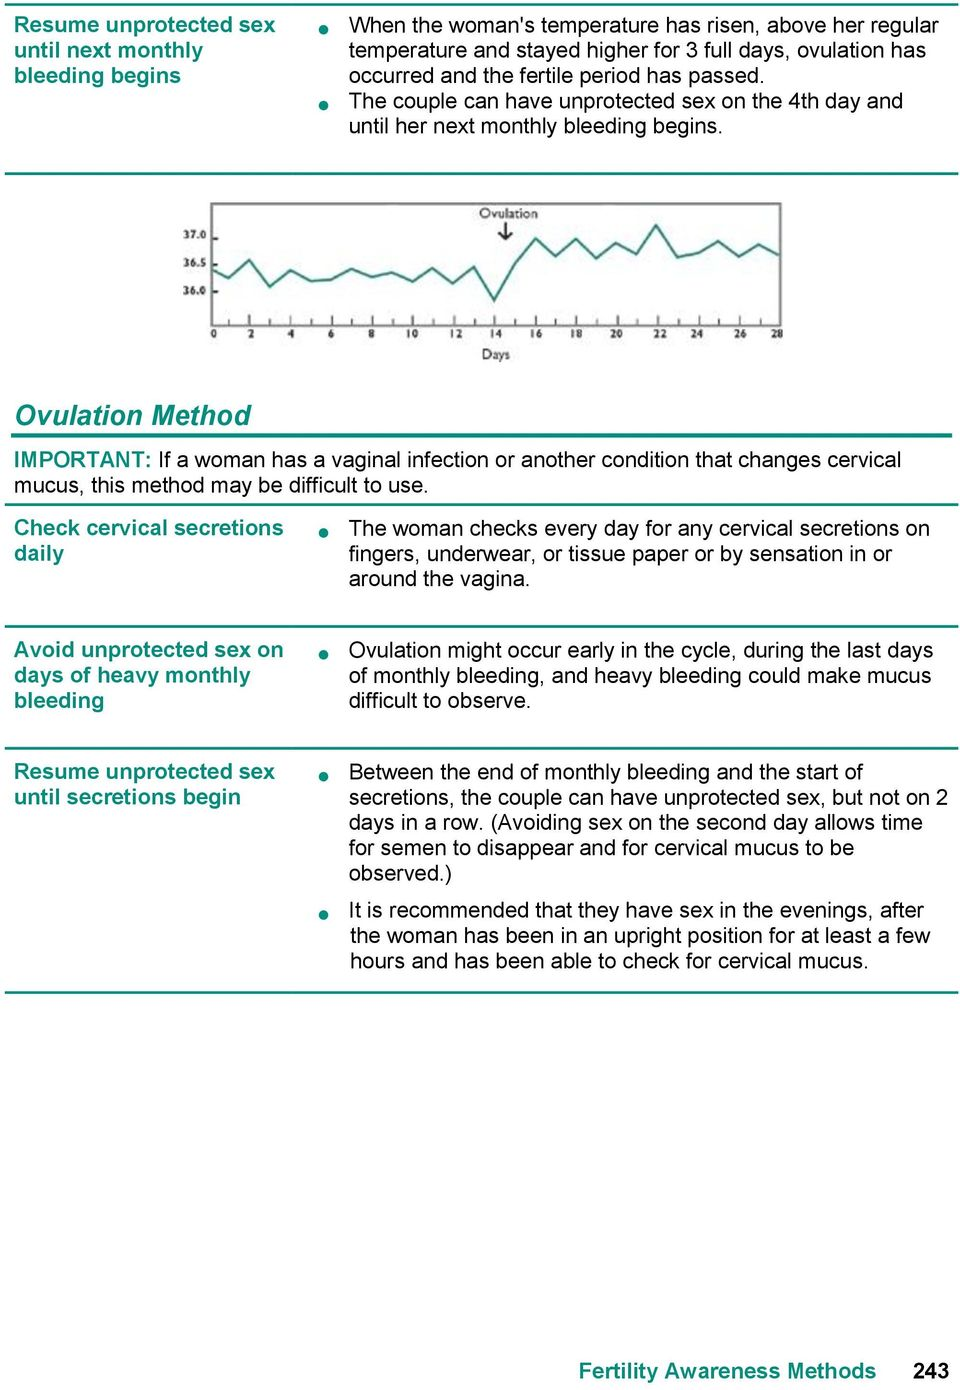 Ovulation Method IMPORTANT: If a woman has a vaginal infection or another condition that changes cervical mucus, this method may be difficult to use.